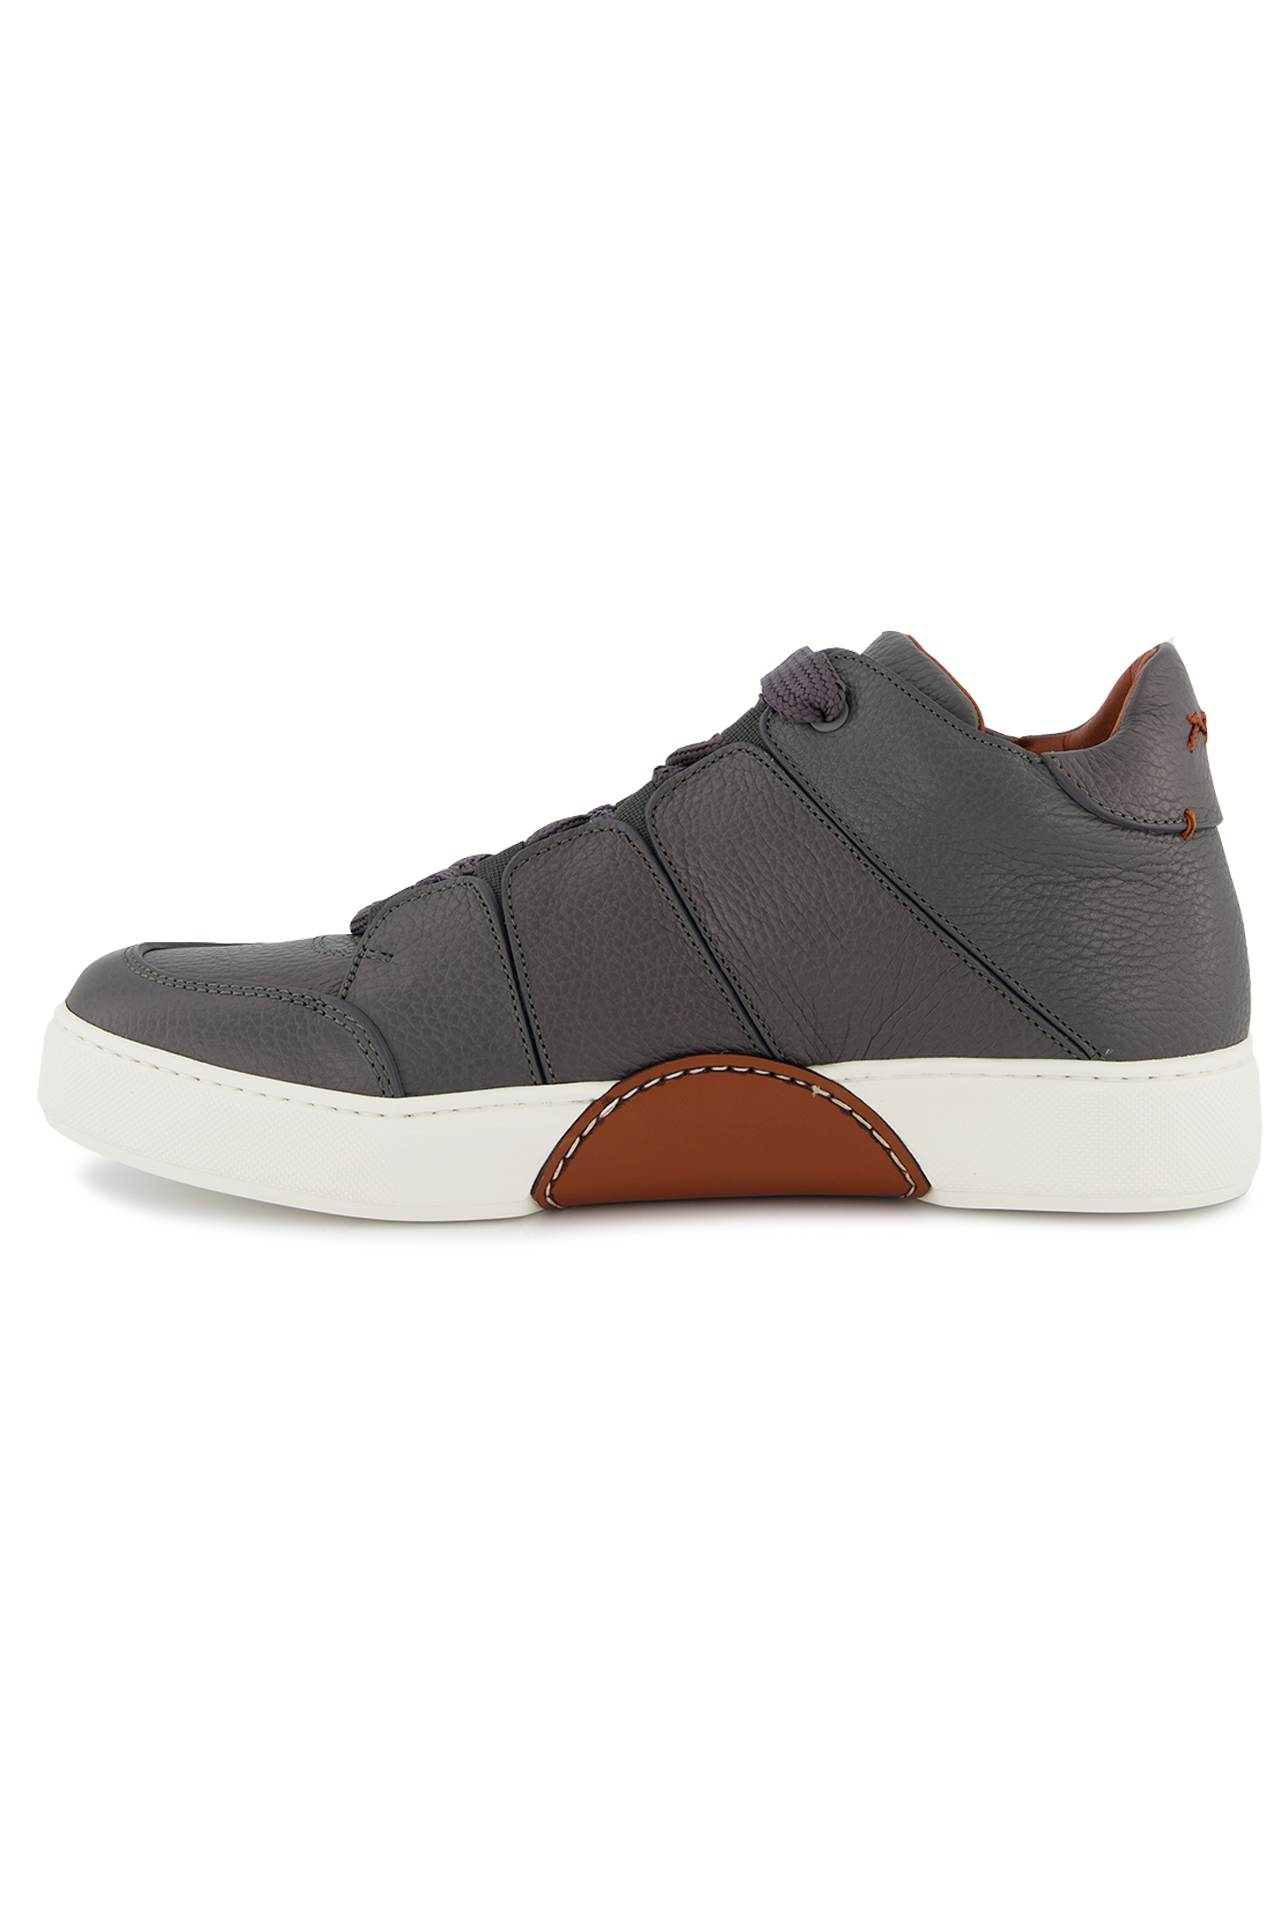 Instep view image of Ermenegildo Zegna Tiziano Leather Hi Top Sneaker